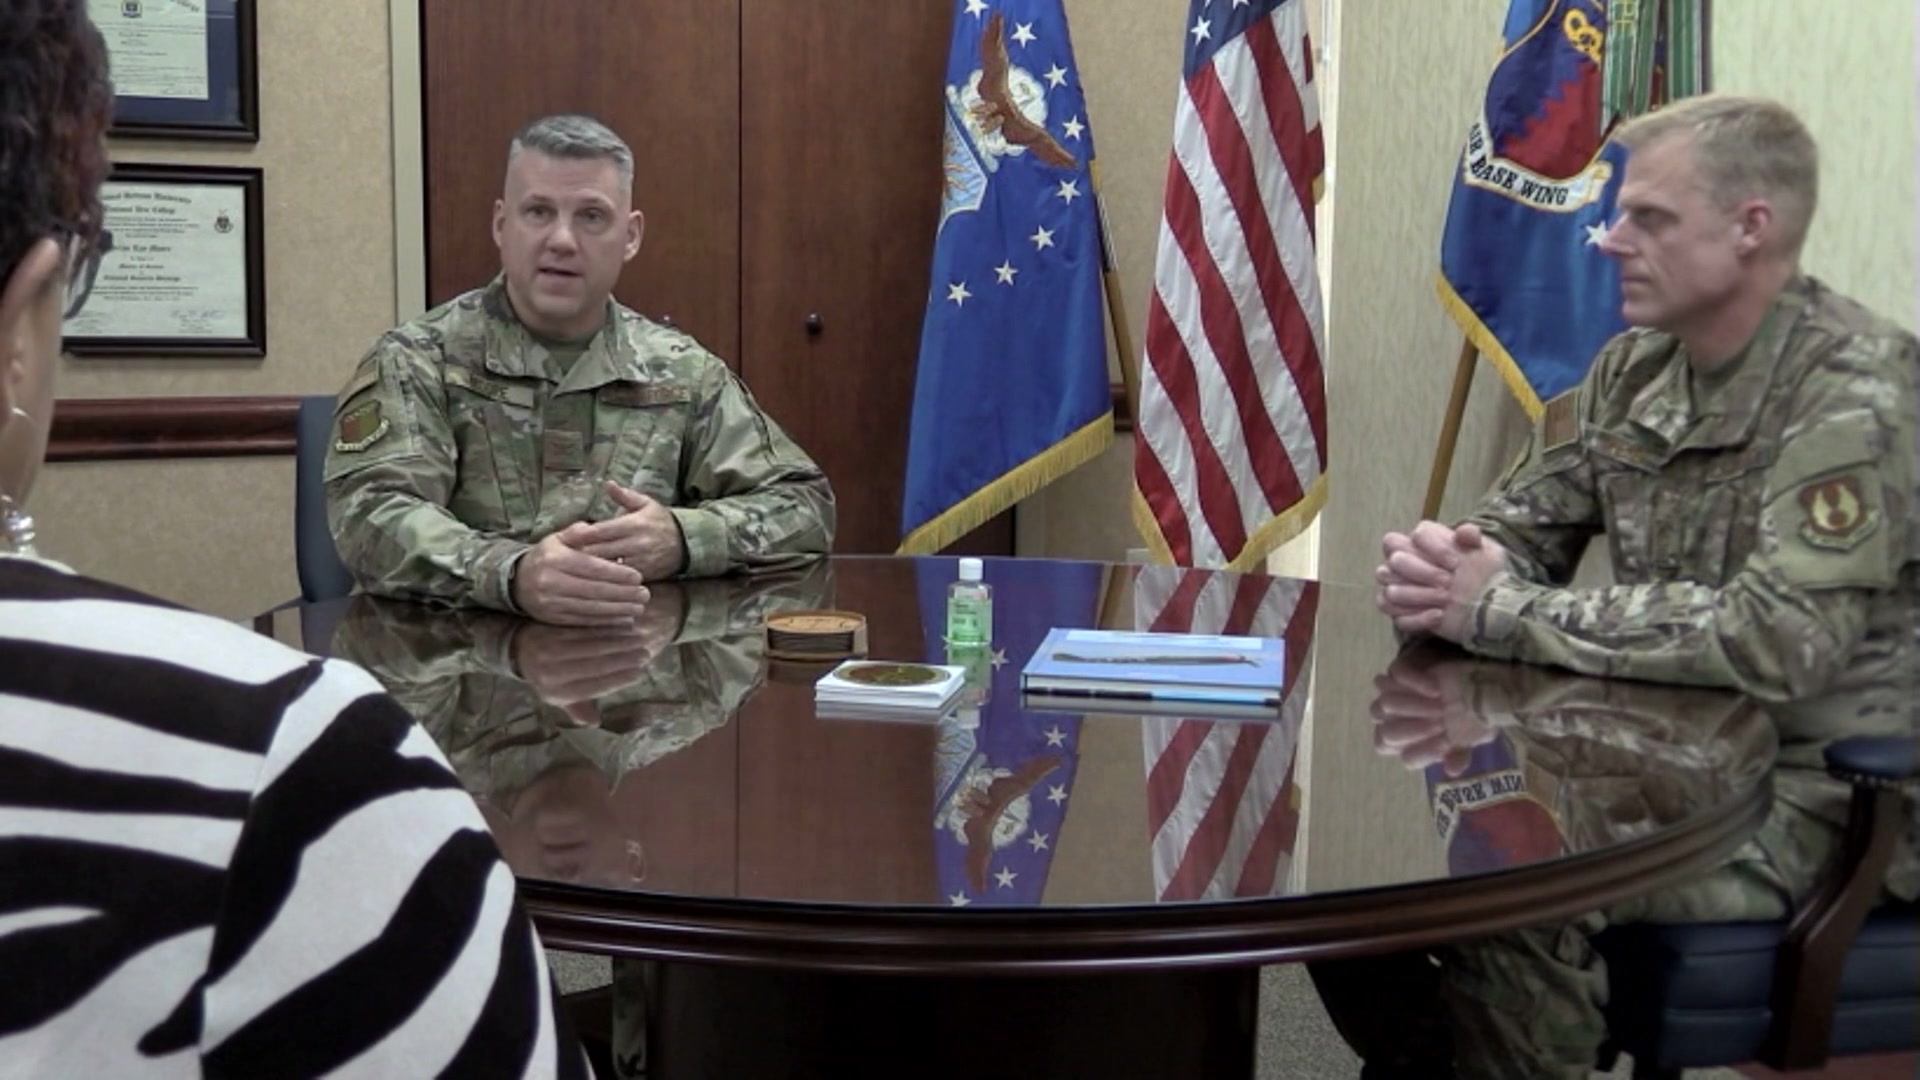 Video thumbnail shows Col. Brian Moore and Chief Master Sgt. Timothy Wieser sitting at a table answering questions from off camera.